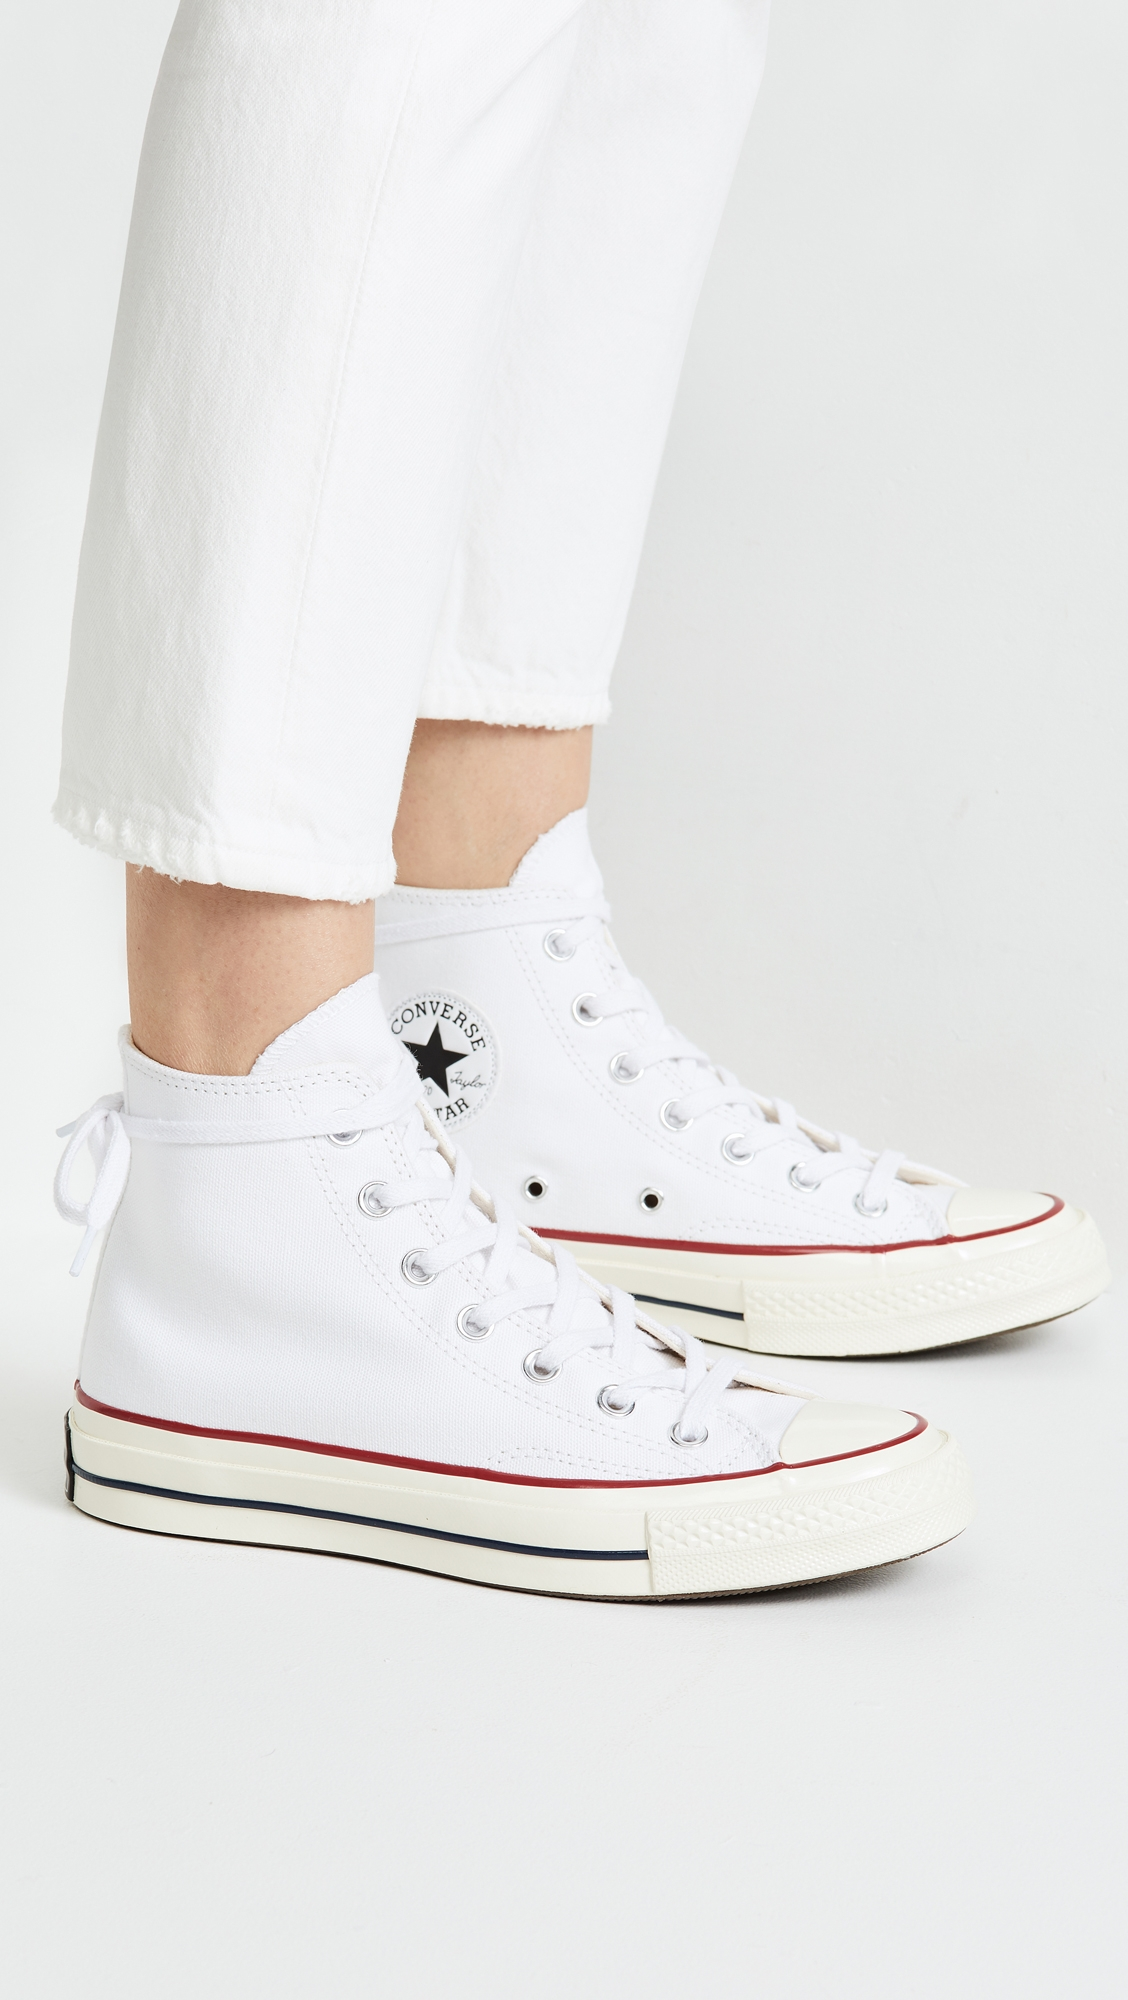 All Star '70s High Top Sneakers | High top sneakers